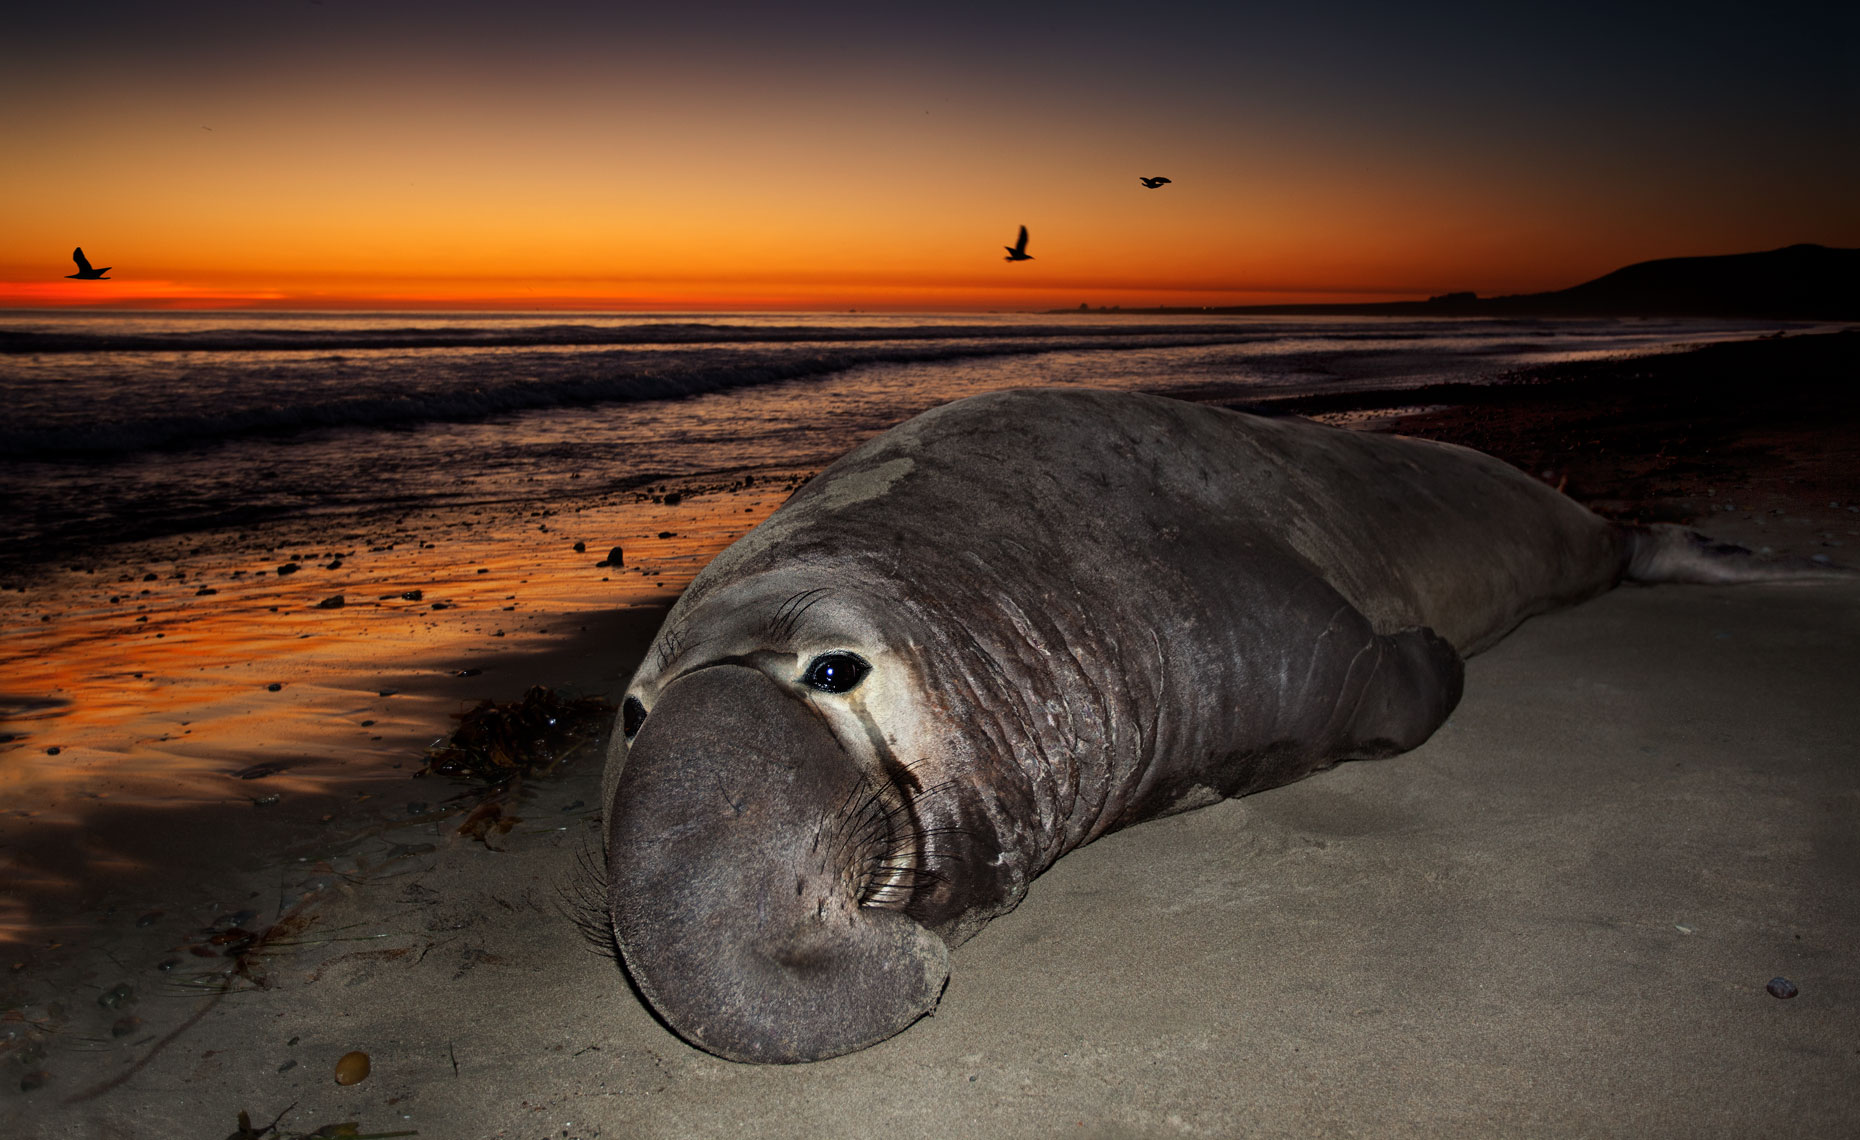 Elephant-seals-feb11_0726-4W.jpg